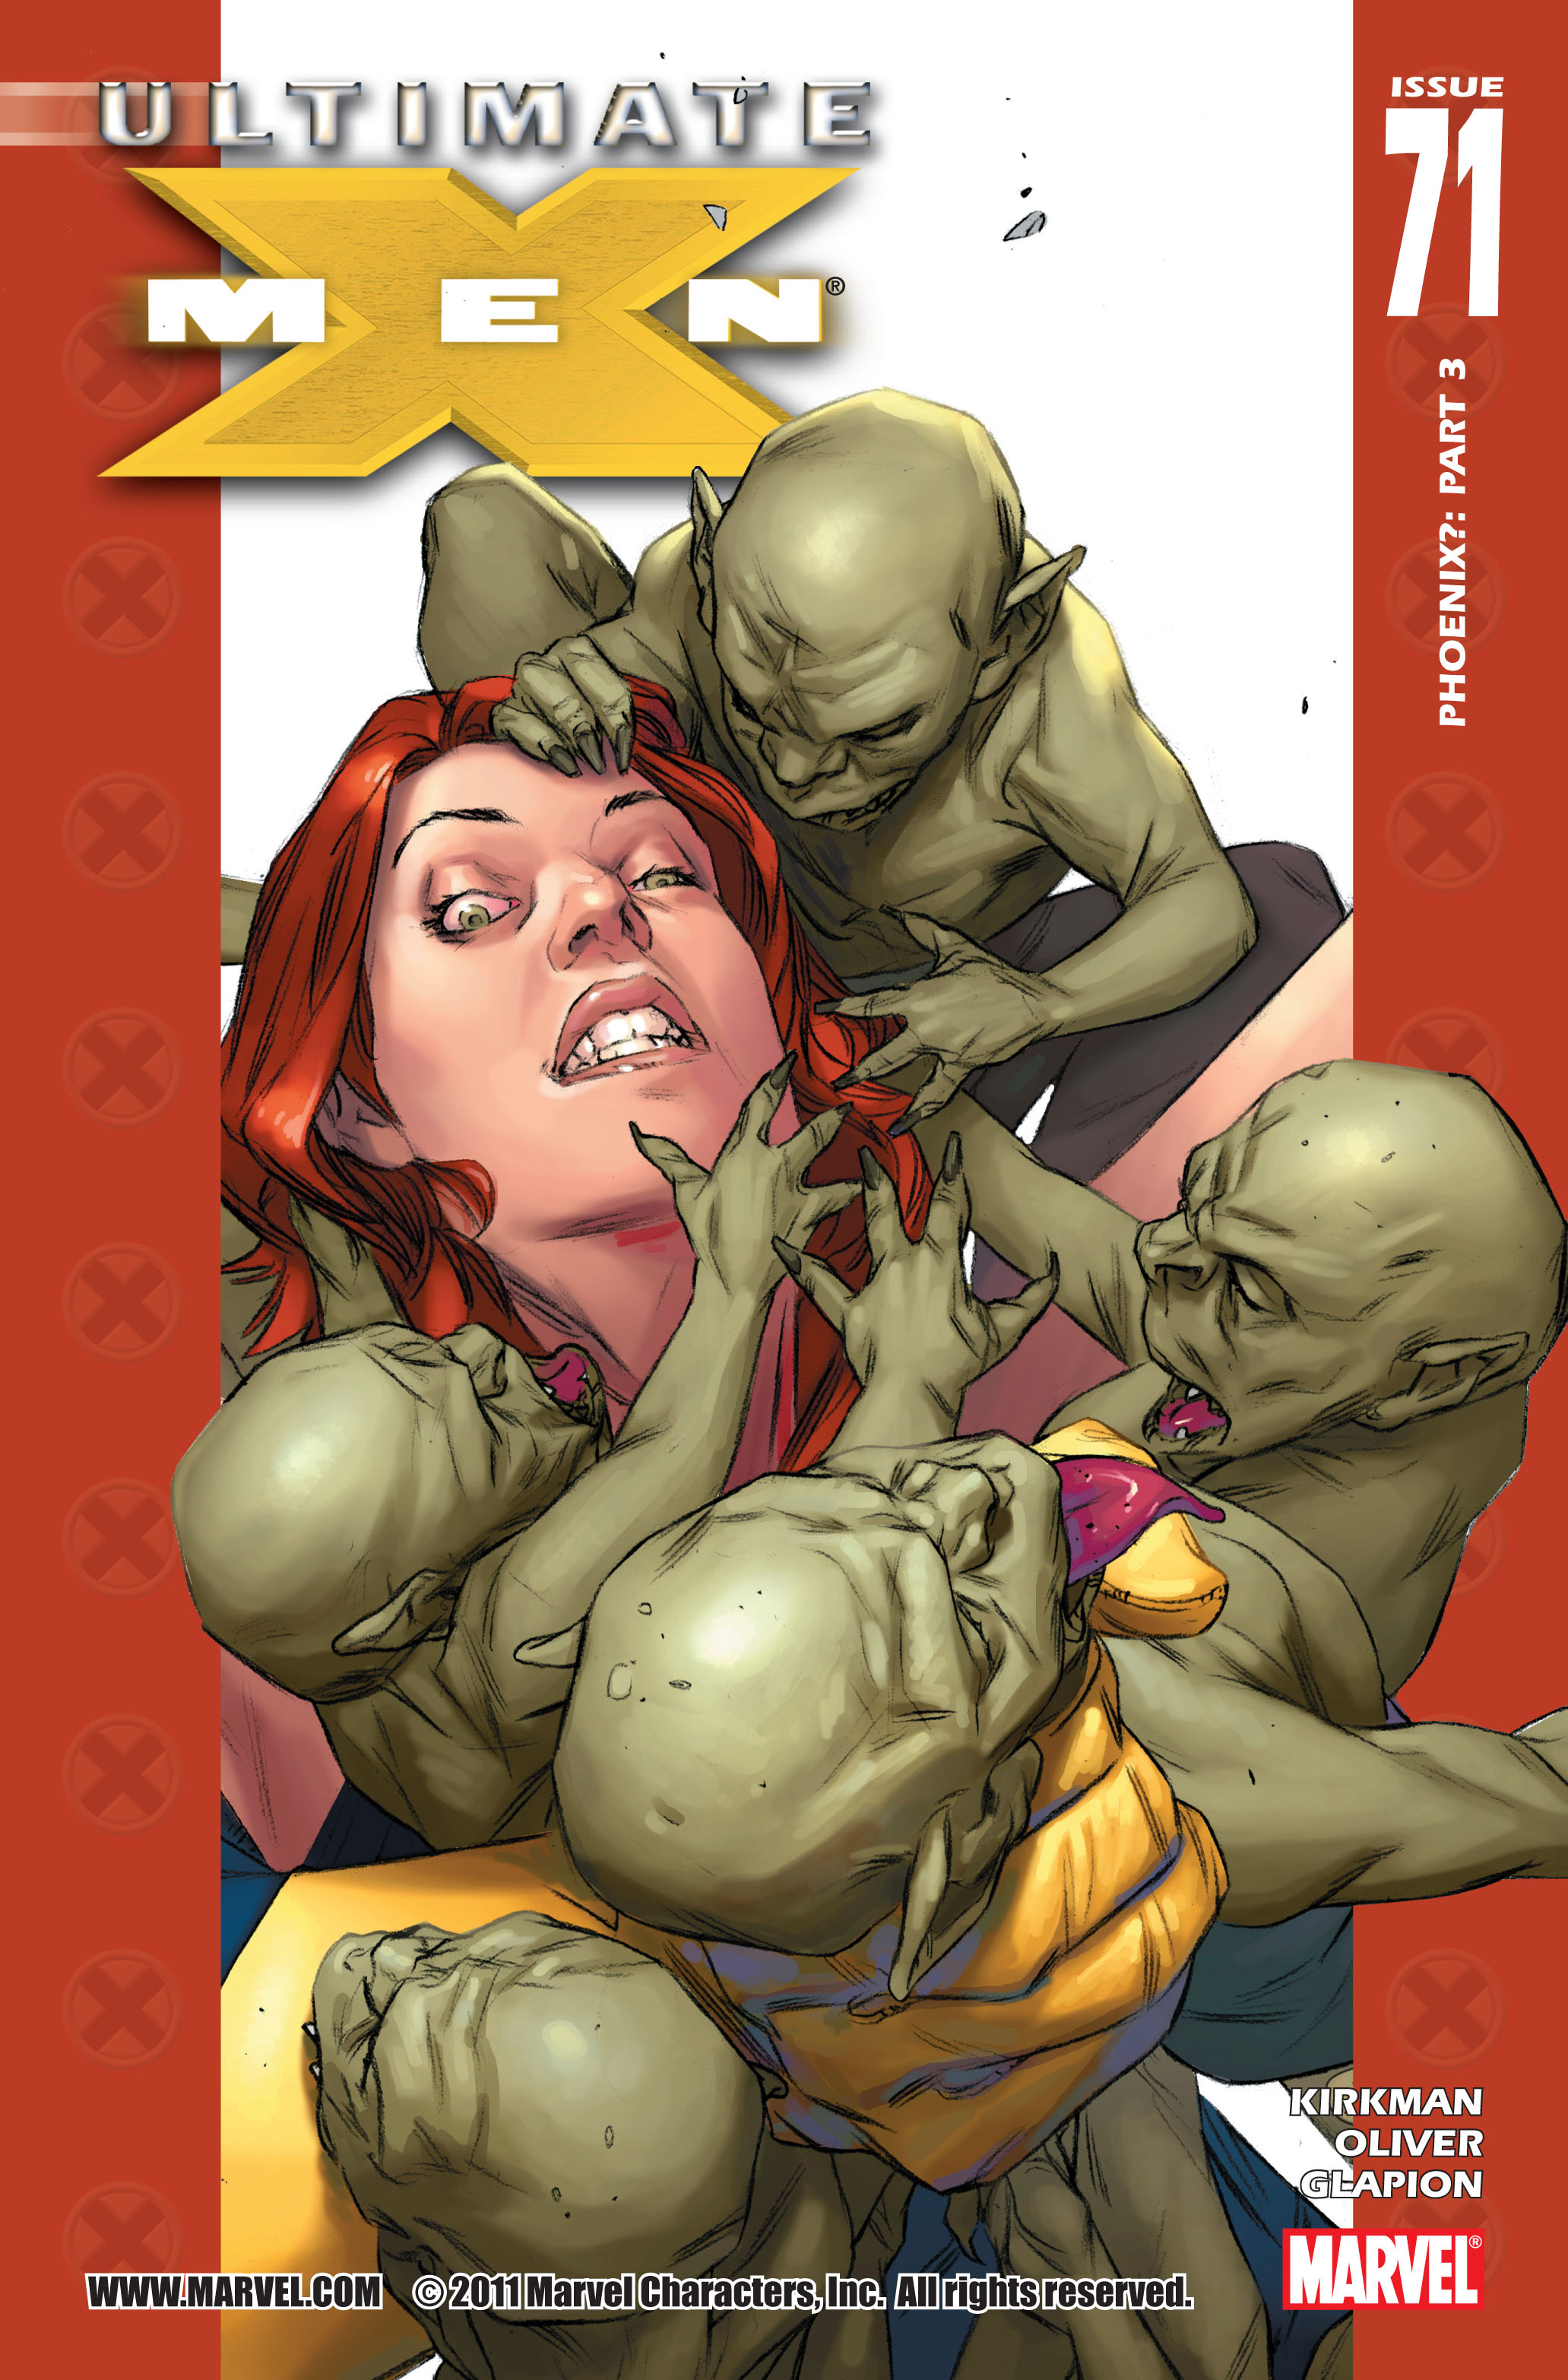 Read online Ultimate X-Men comic -  Issue #71 - 1